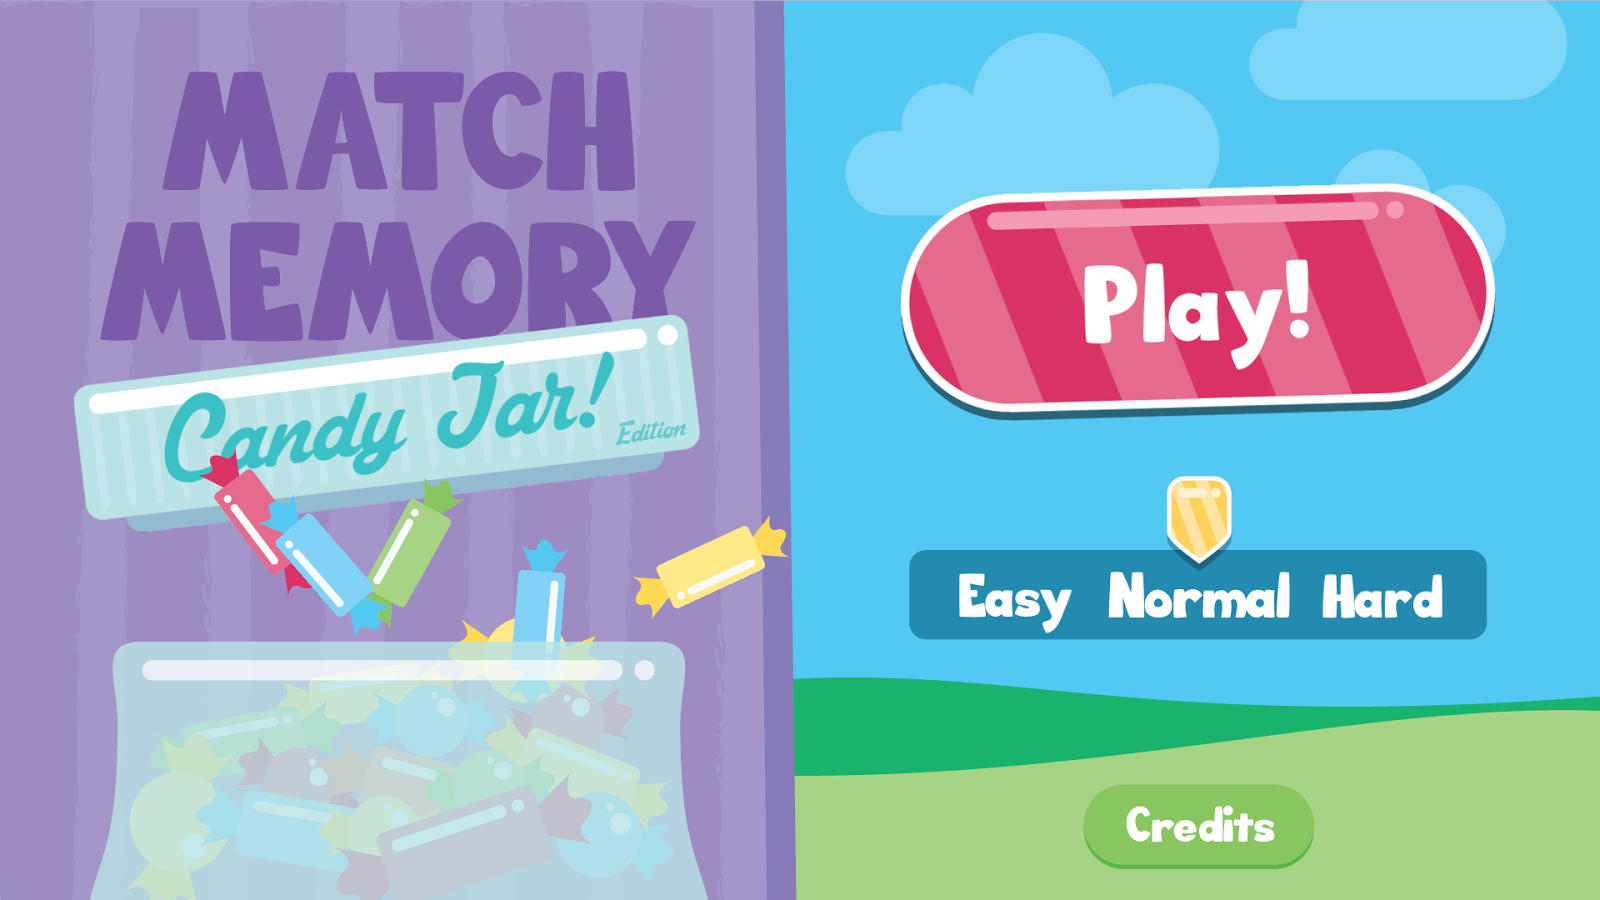 NEW Match Memory Game with Candy!